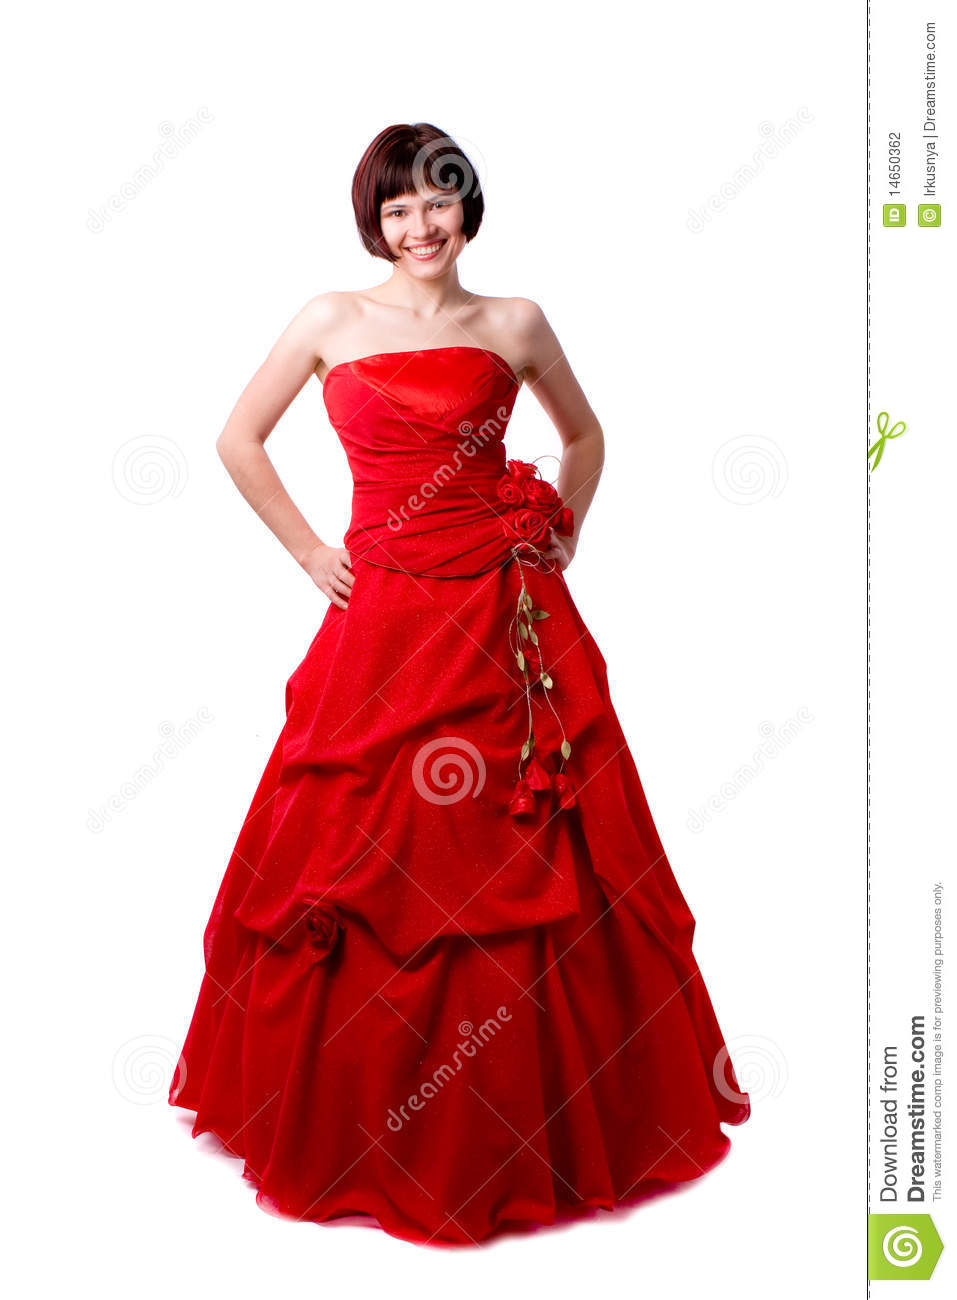 lady in red dress stock photography image 14650362. Black Bedroom Furniture Sets. Home Design Ideas